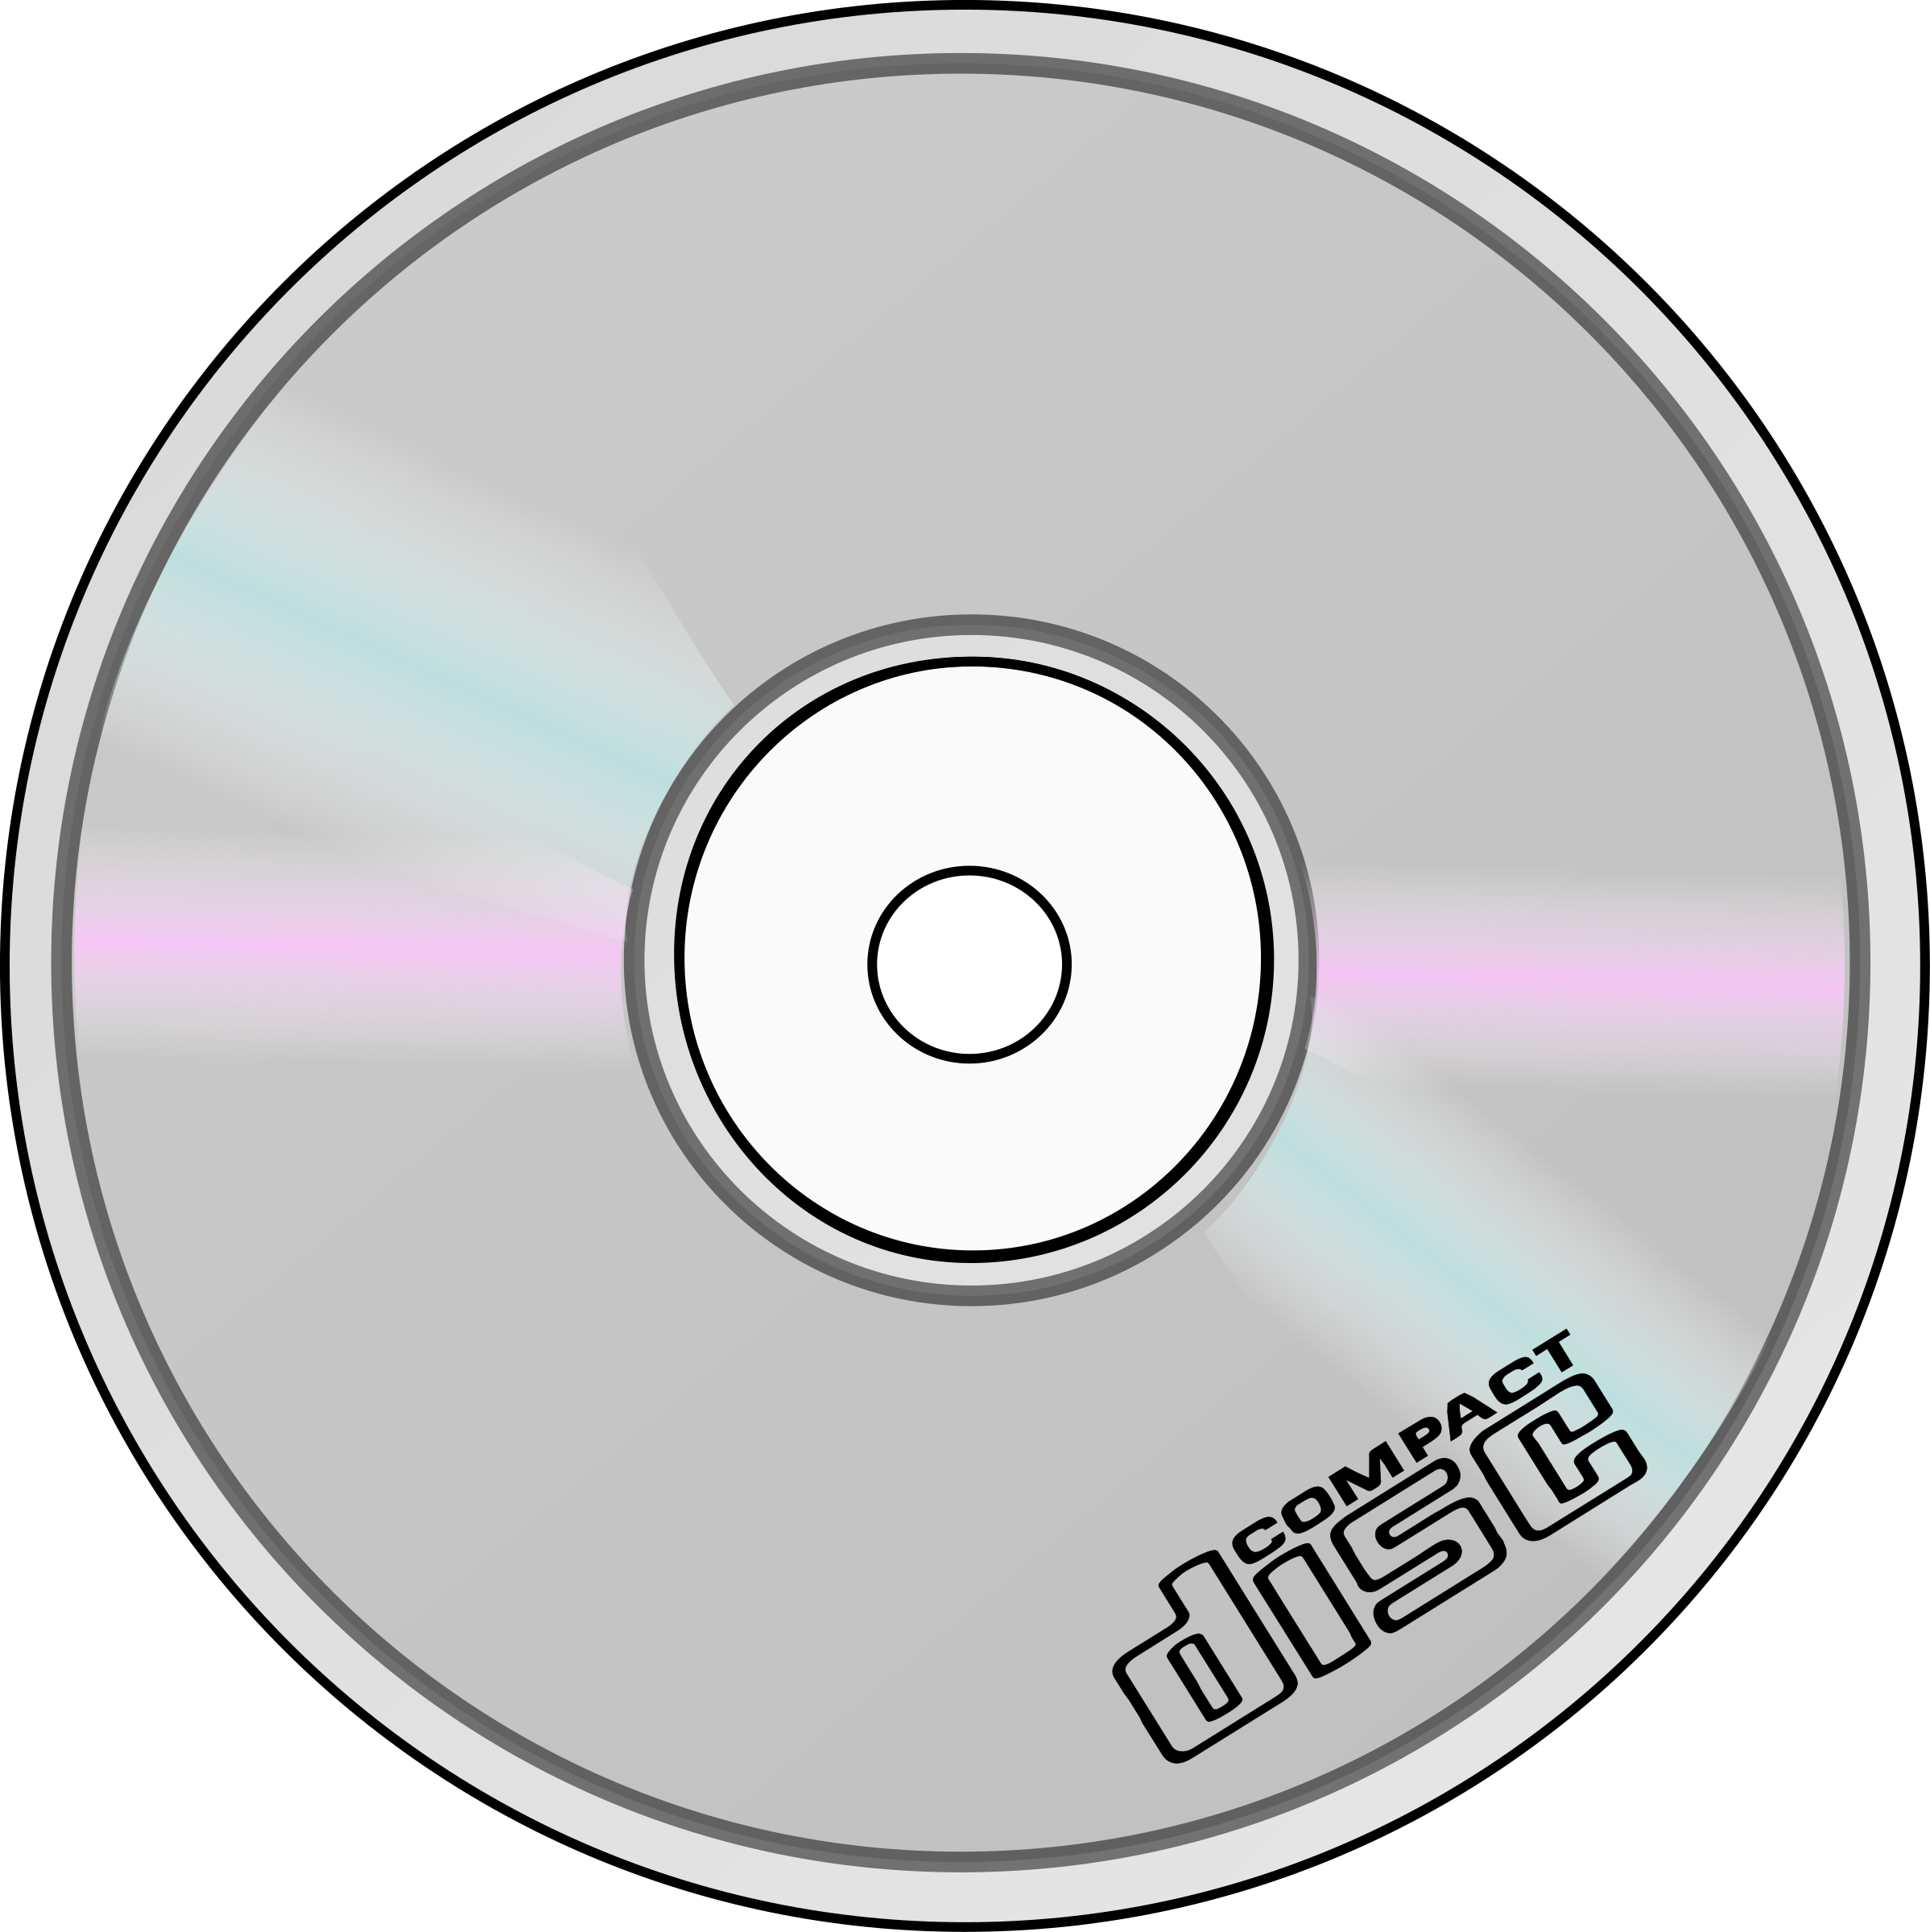 Compact Disc by nicubunu